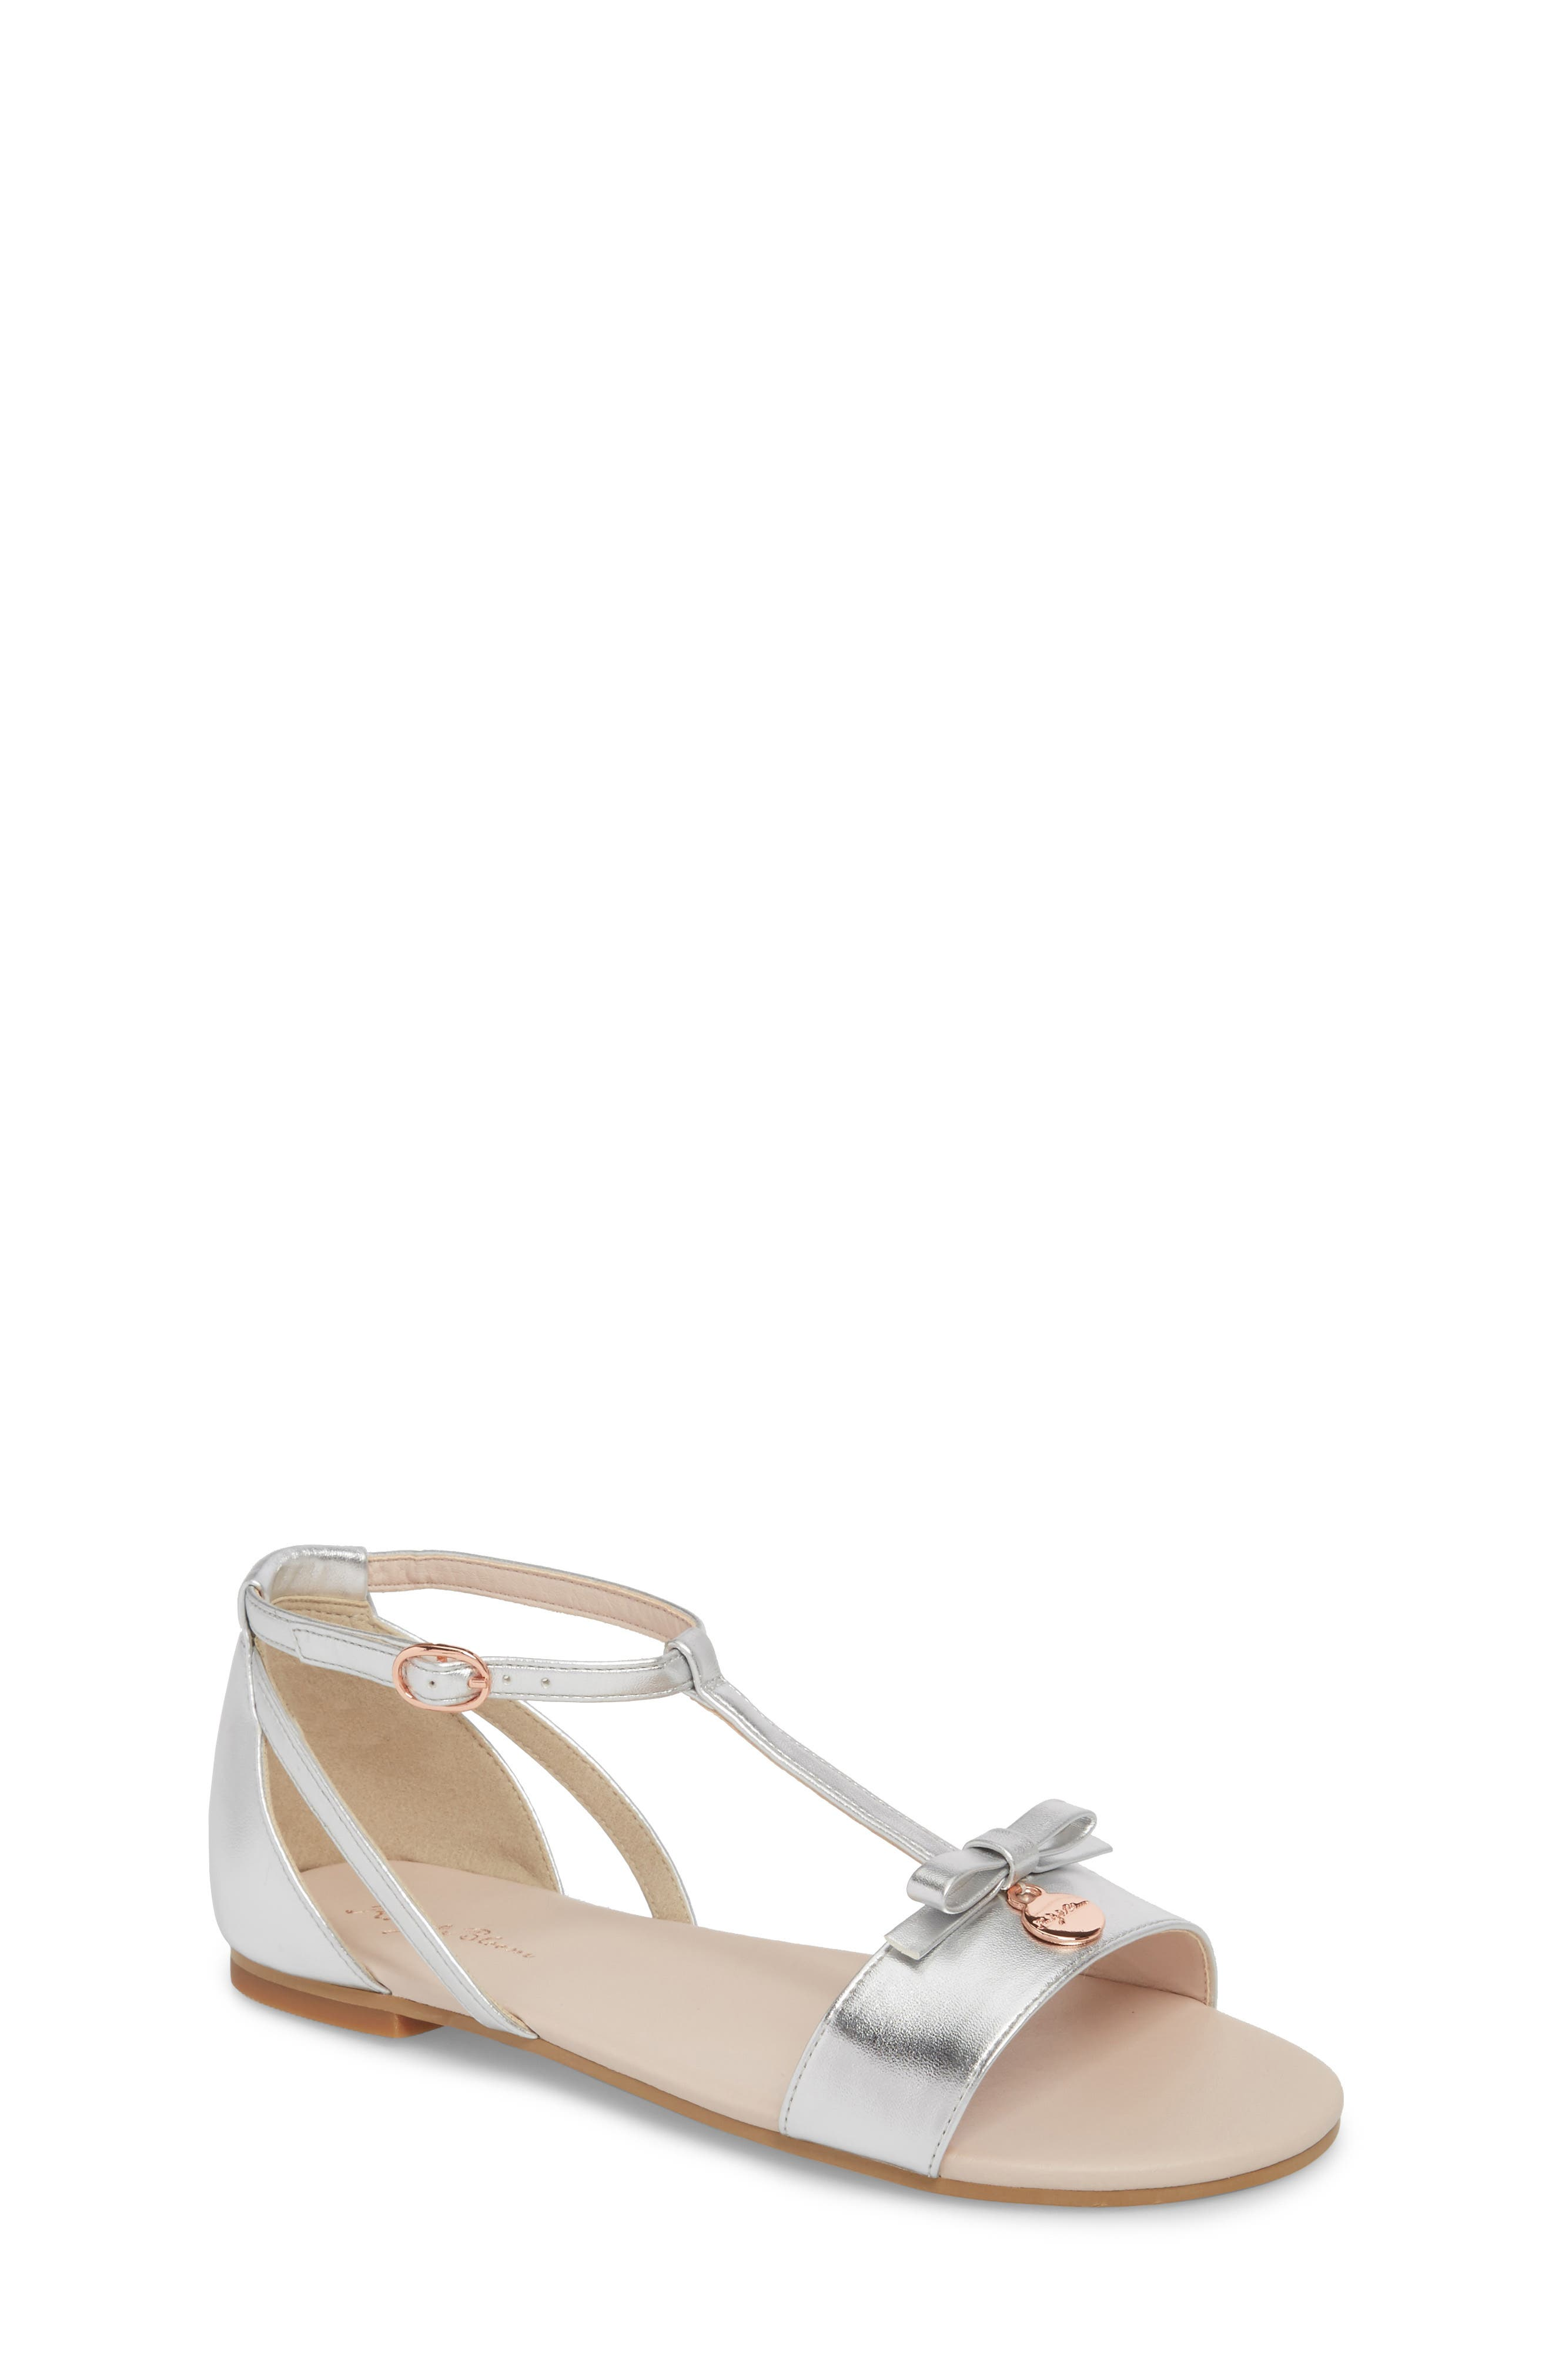 Valentina Metallic T-Strap Sandal,                             Main thumbnail 1, color,                             Silver Faux Leather